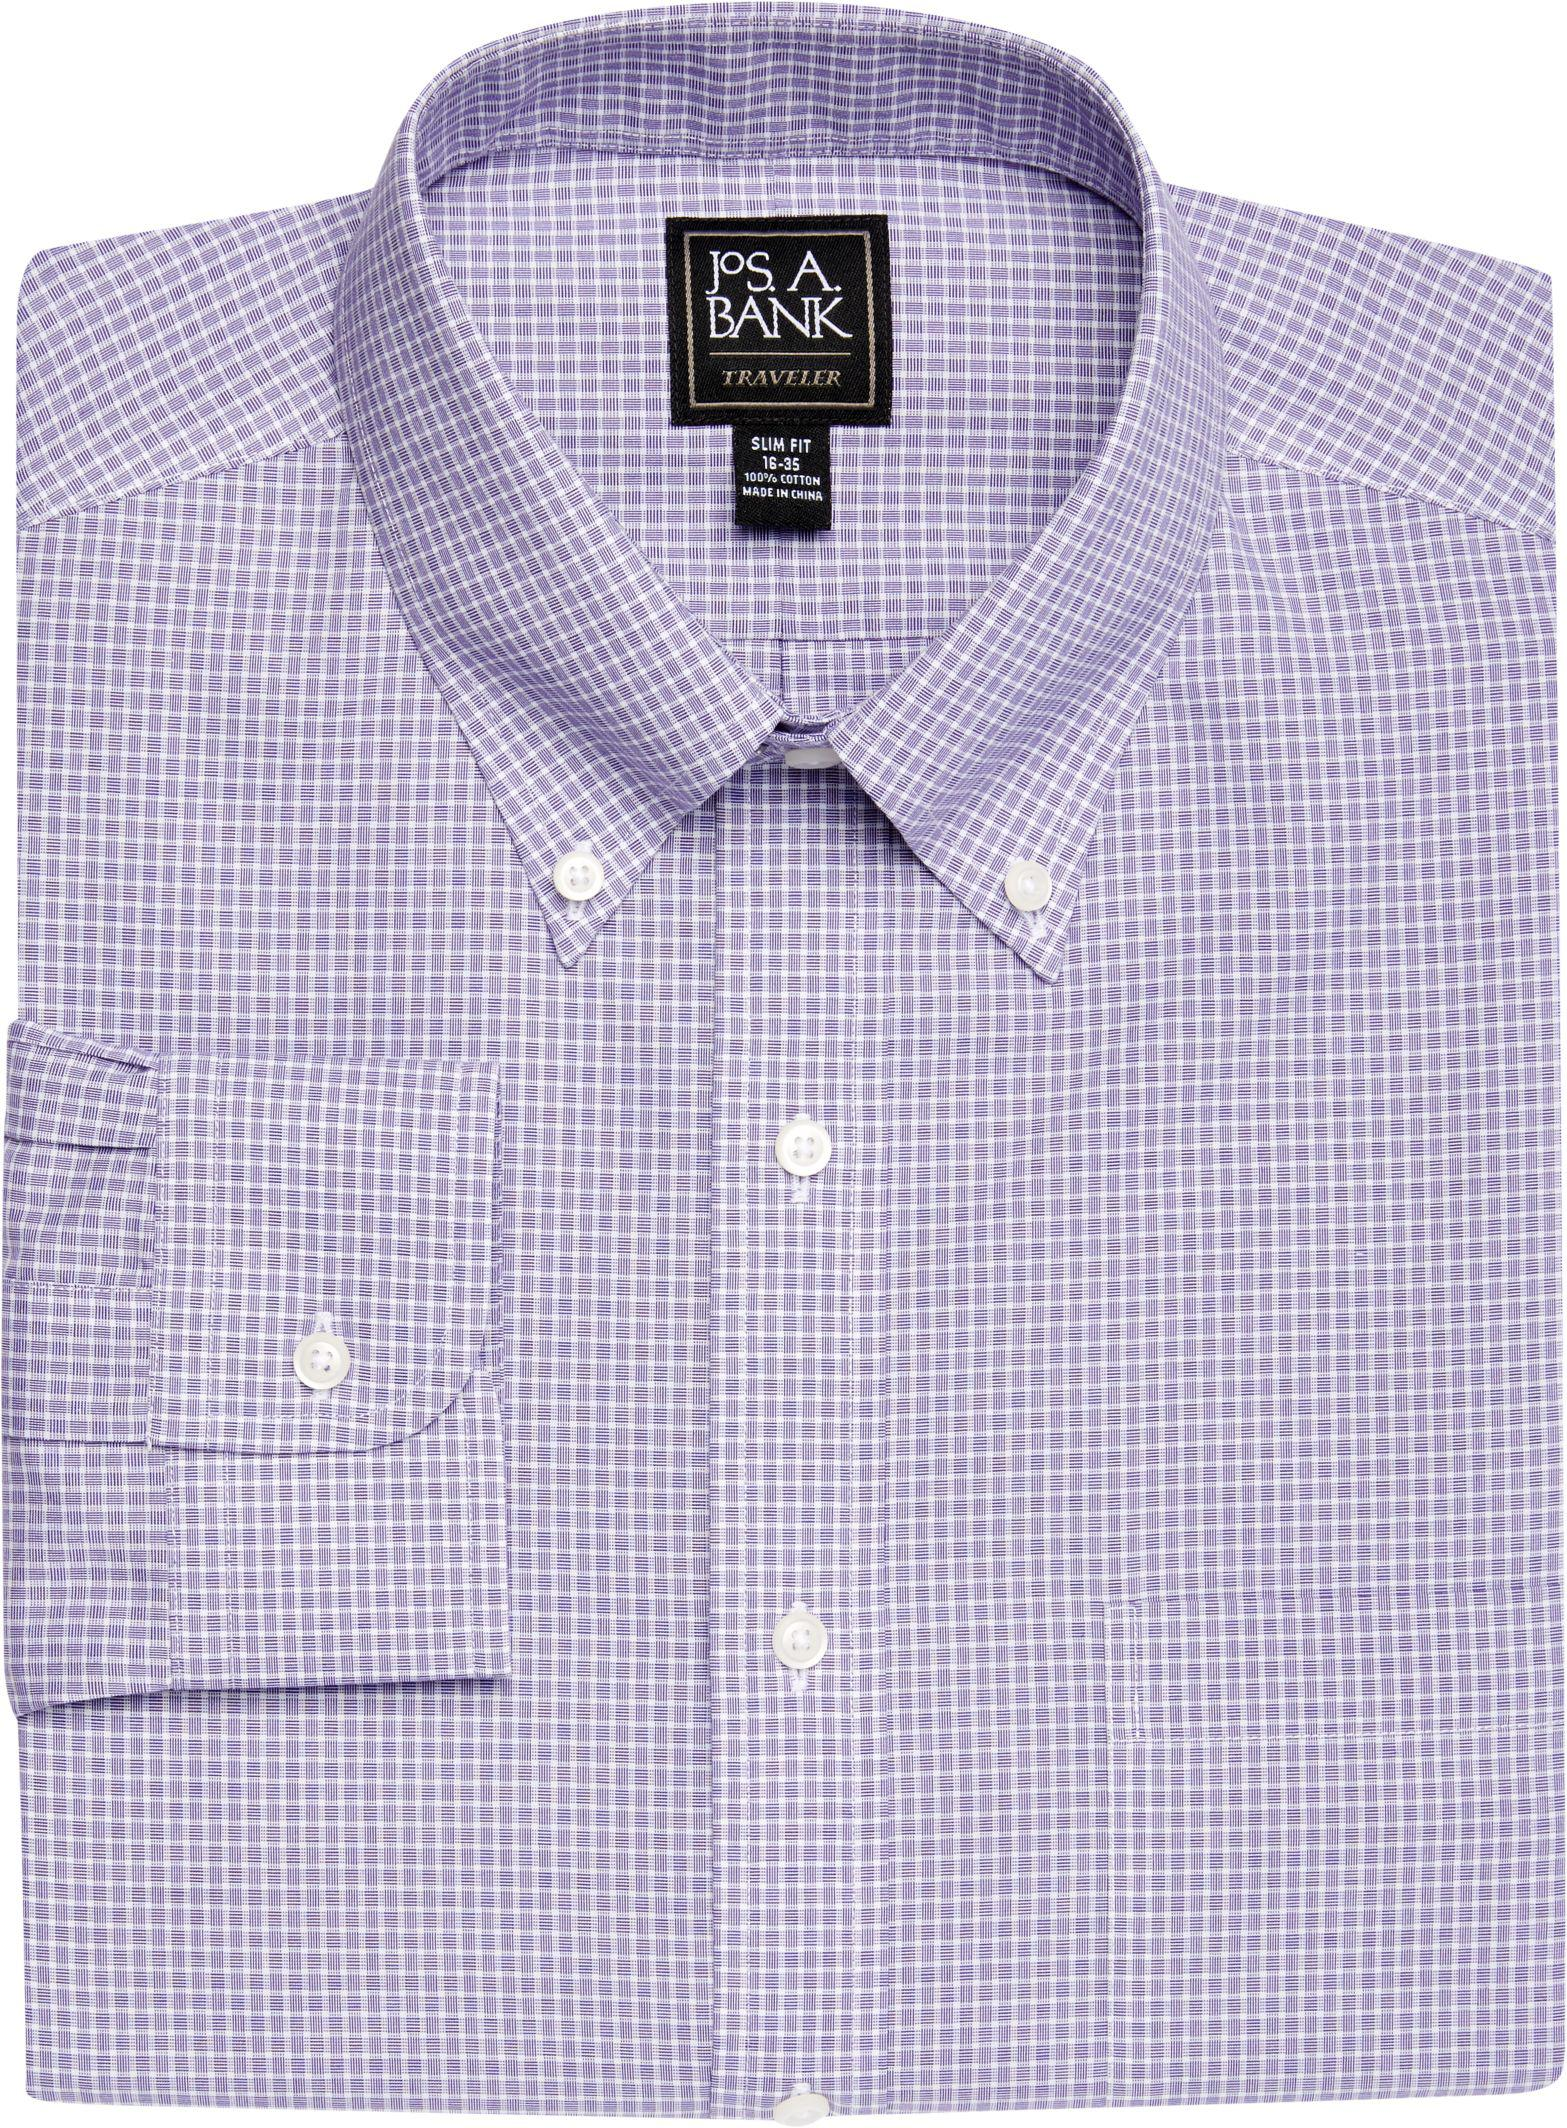 Lyst Jos A Bank Traveller Collection Slim Fit Button